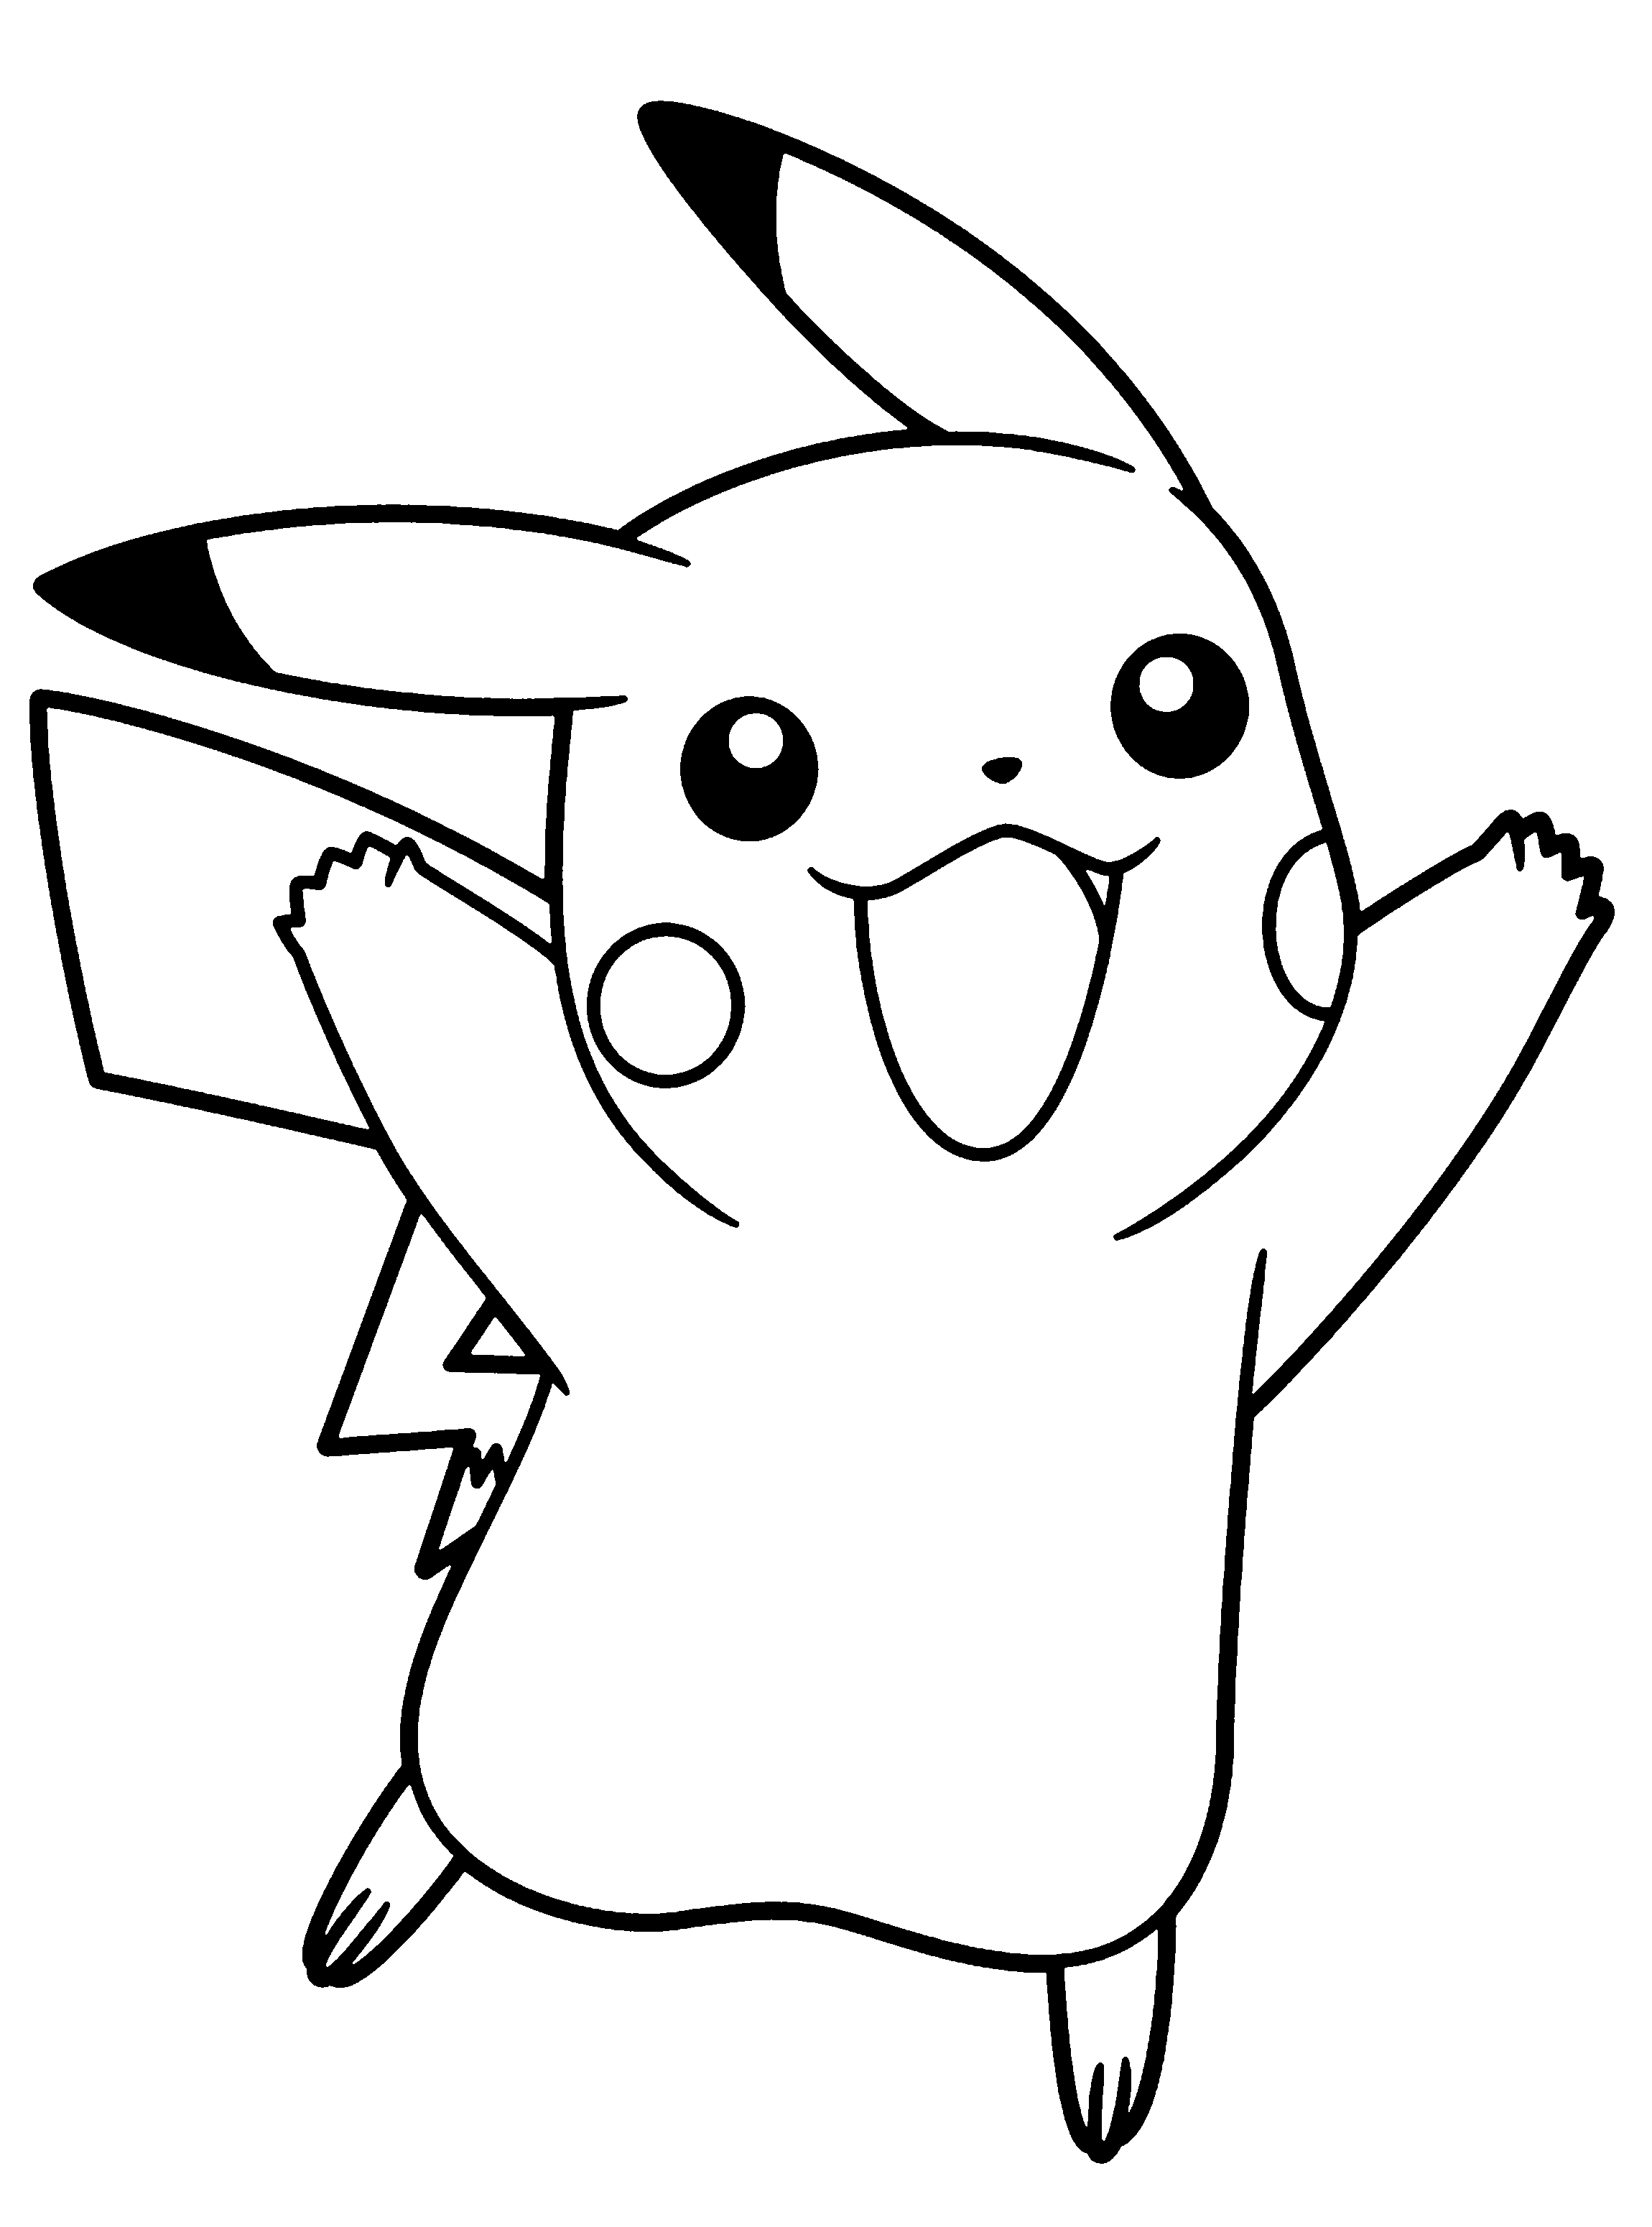 picachu coloring pages pikachu coloring pages to download and print for free coloring picachu pages